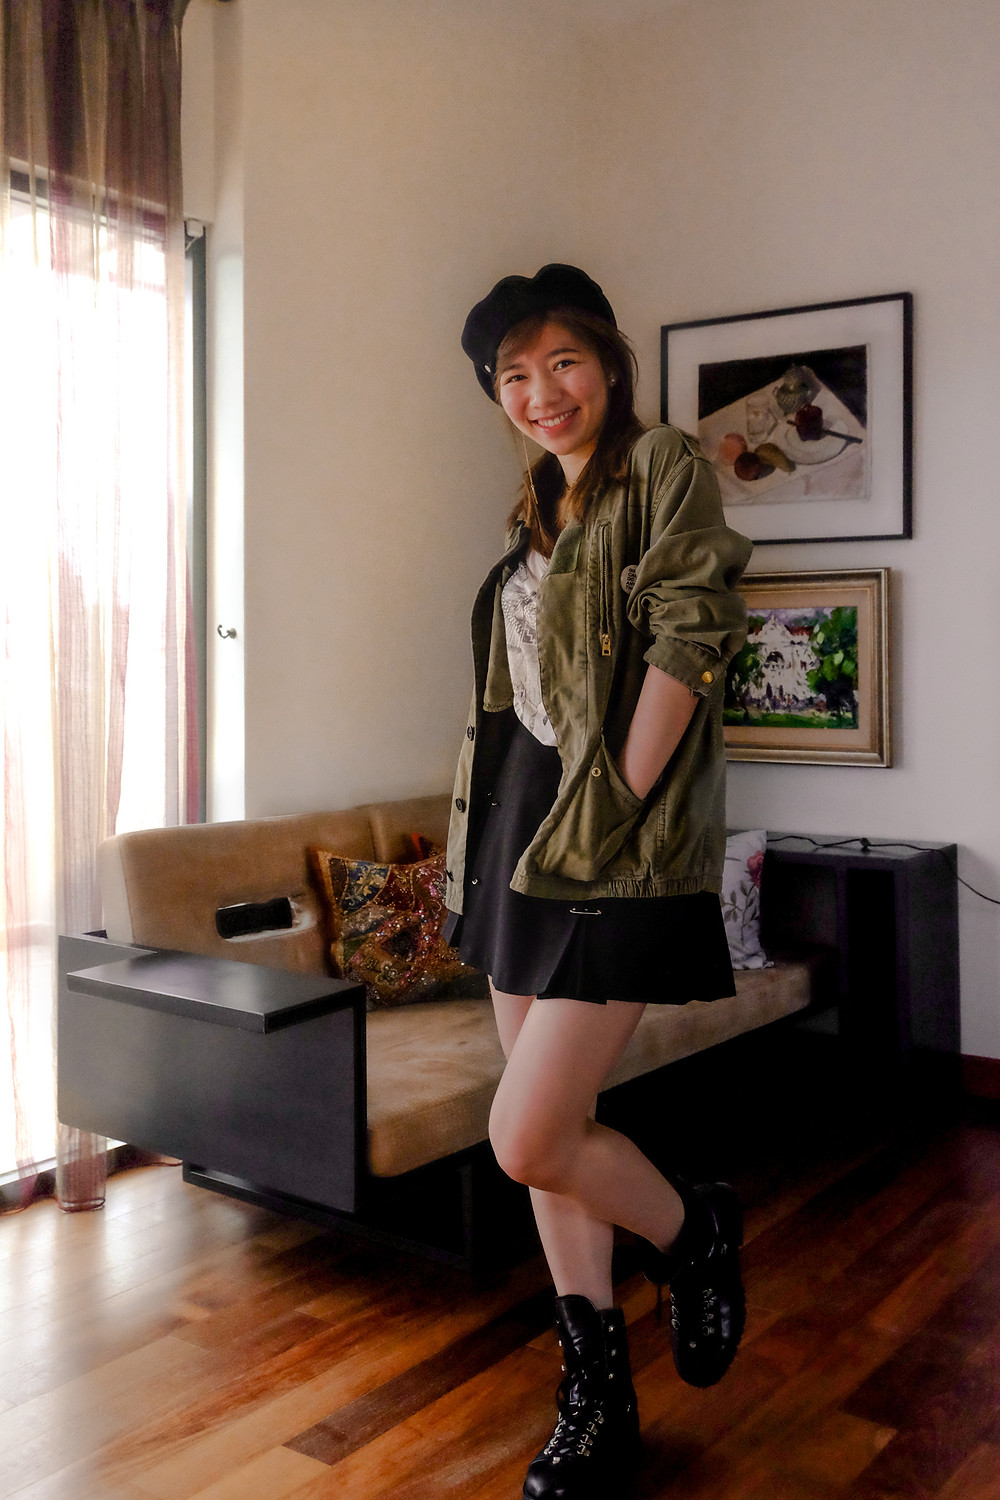 Zadig & Voltaire olive military oversized shirt, loose white tee, high-waisted black skirt, AllSaints military boots, black beret outfit, RollingBear Travels blog.